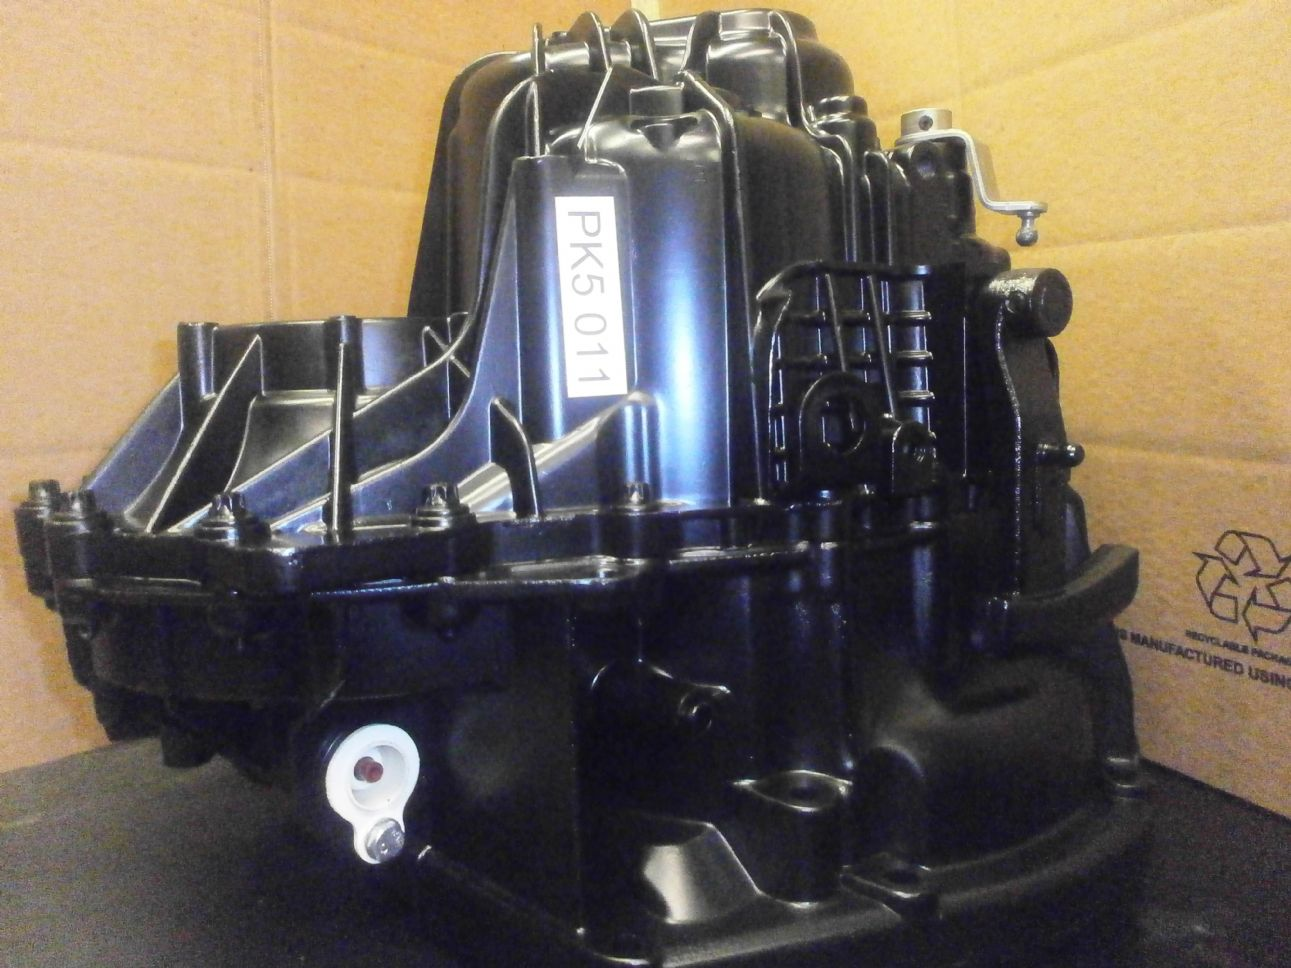 Reconditioned 1 9 dci PK6 and PK5 Gearboxes - Renault Trafic